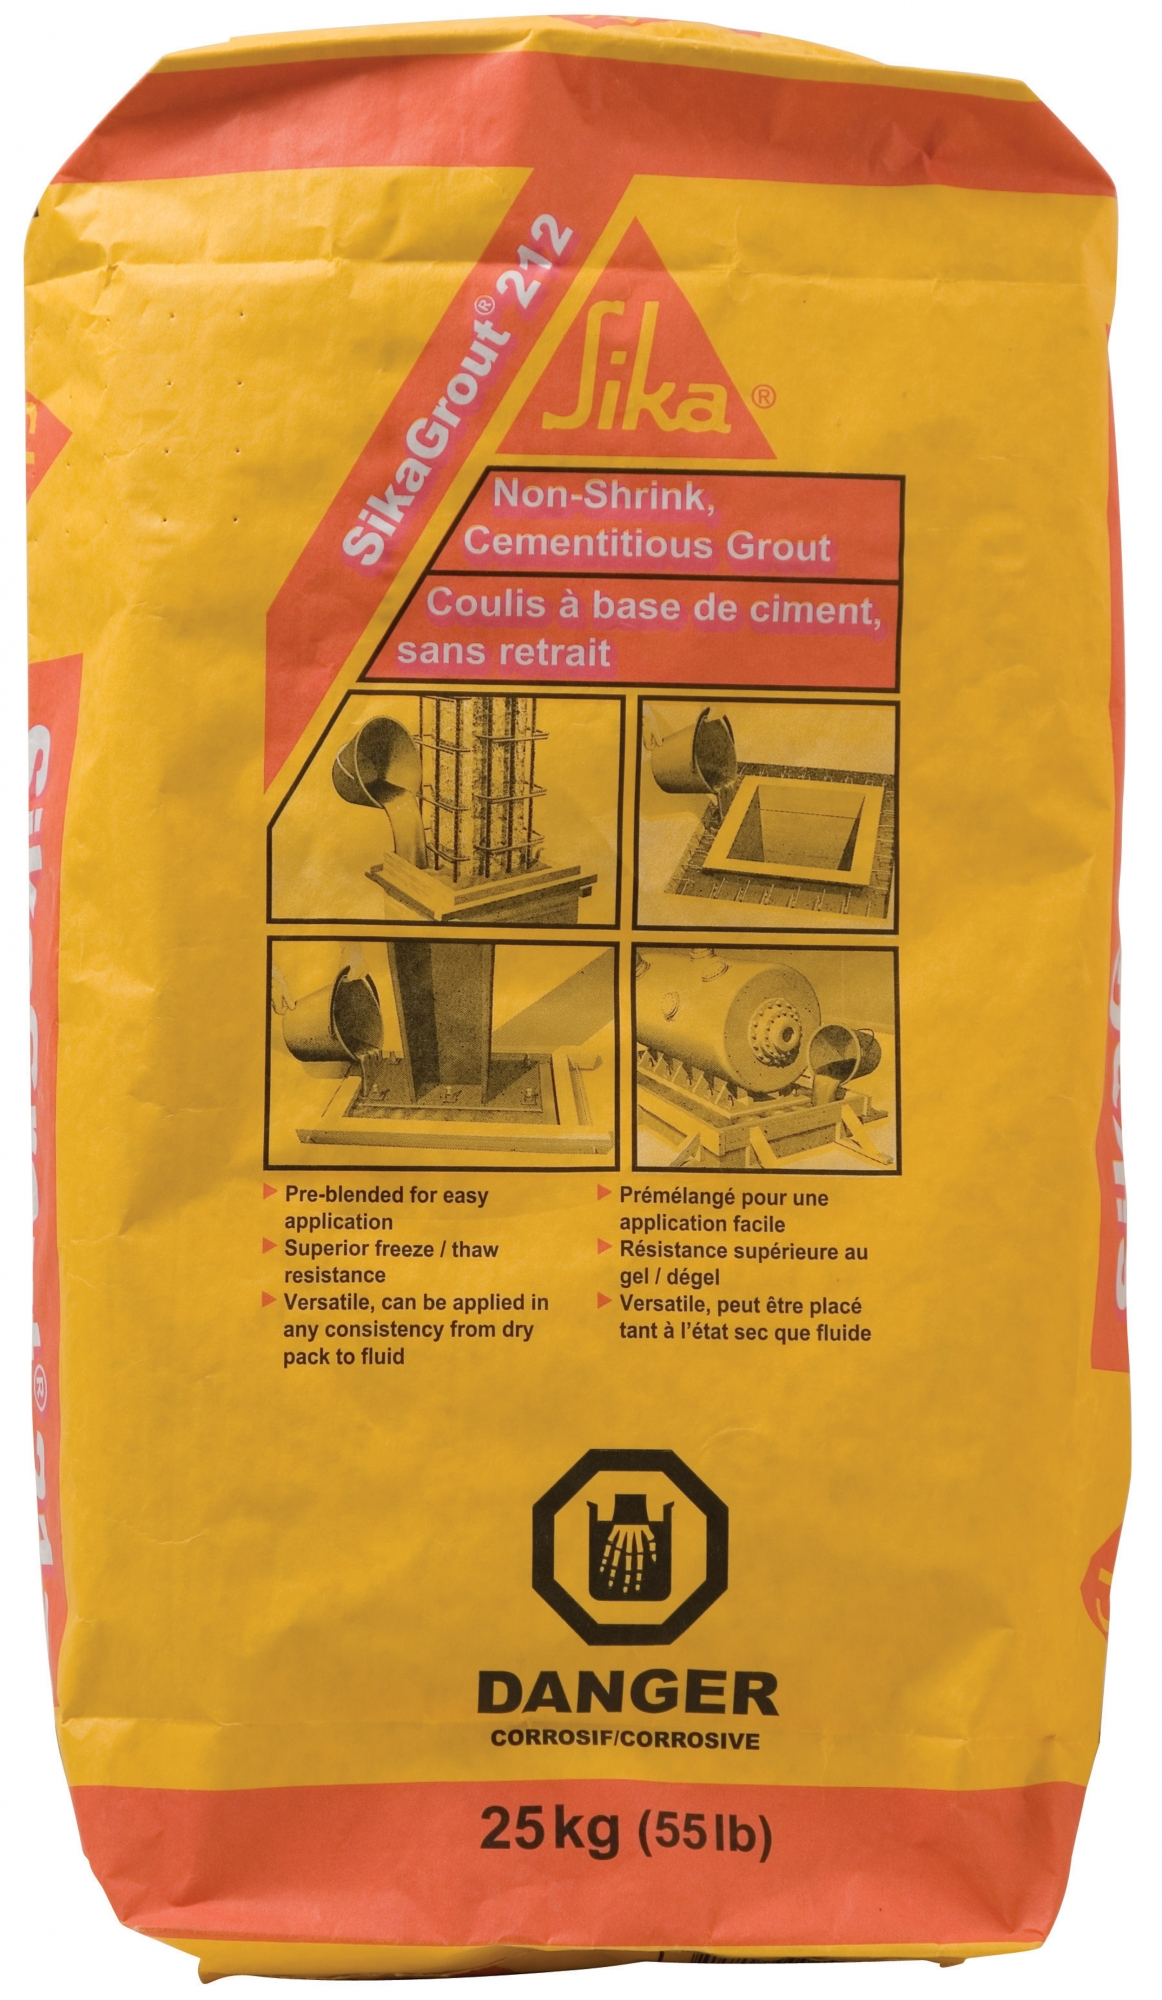 Sika 212 Non Shrink Grout Northland Construction Supplies